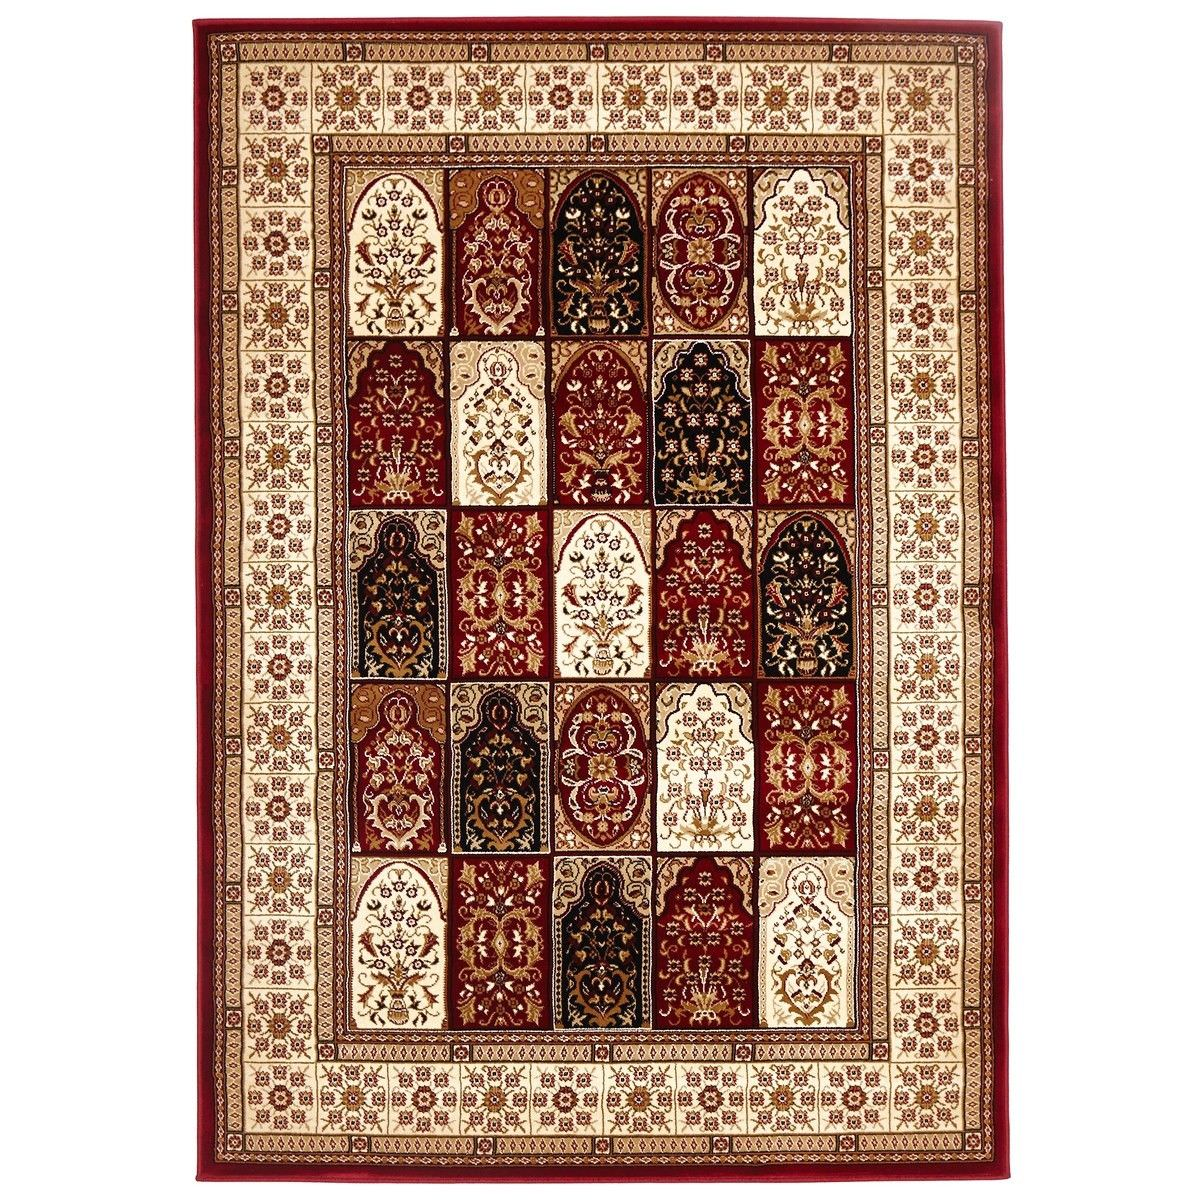 Sydney Traditional Tile Turkish Made Oriental Rug, 170x120cm, Red / Ivory